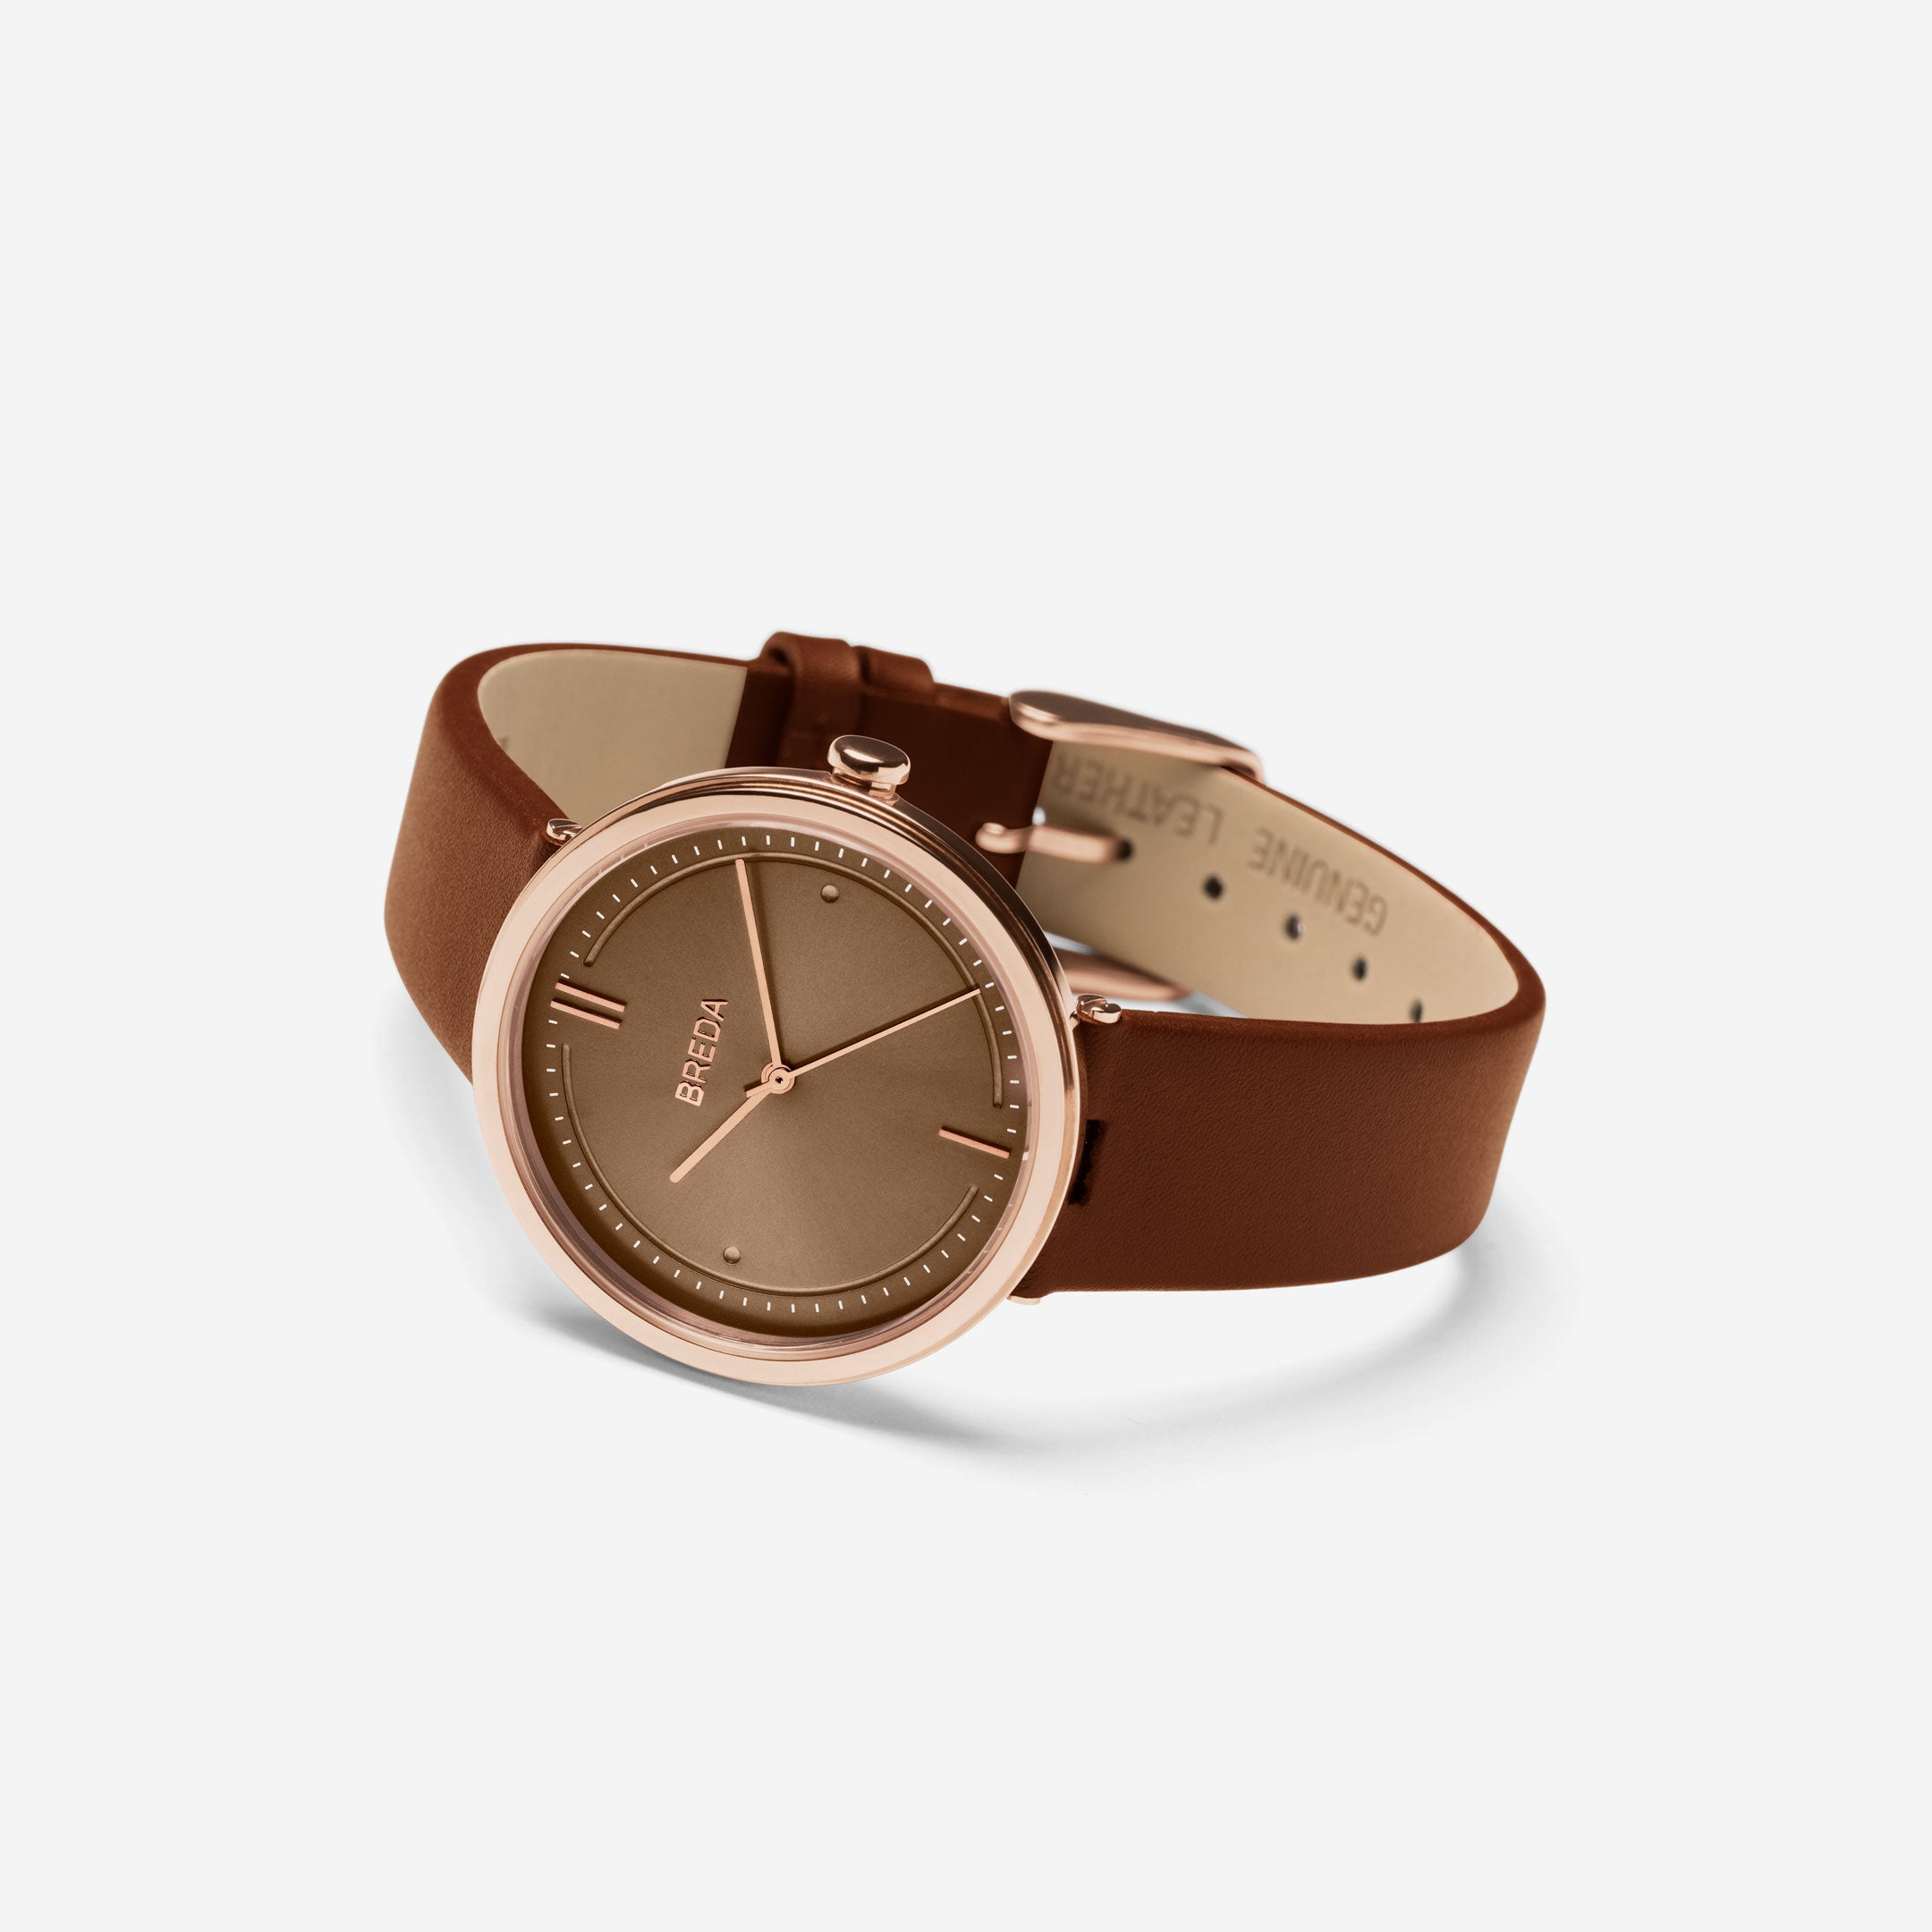 //cdn.shopify.com/s/files/1/0879/6650/products/breda-agnes-1733d-rosegold-brown-leather-watch-angle_1024x1024.jpg?v=1522789096